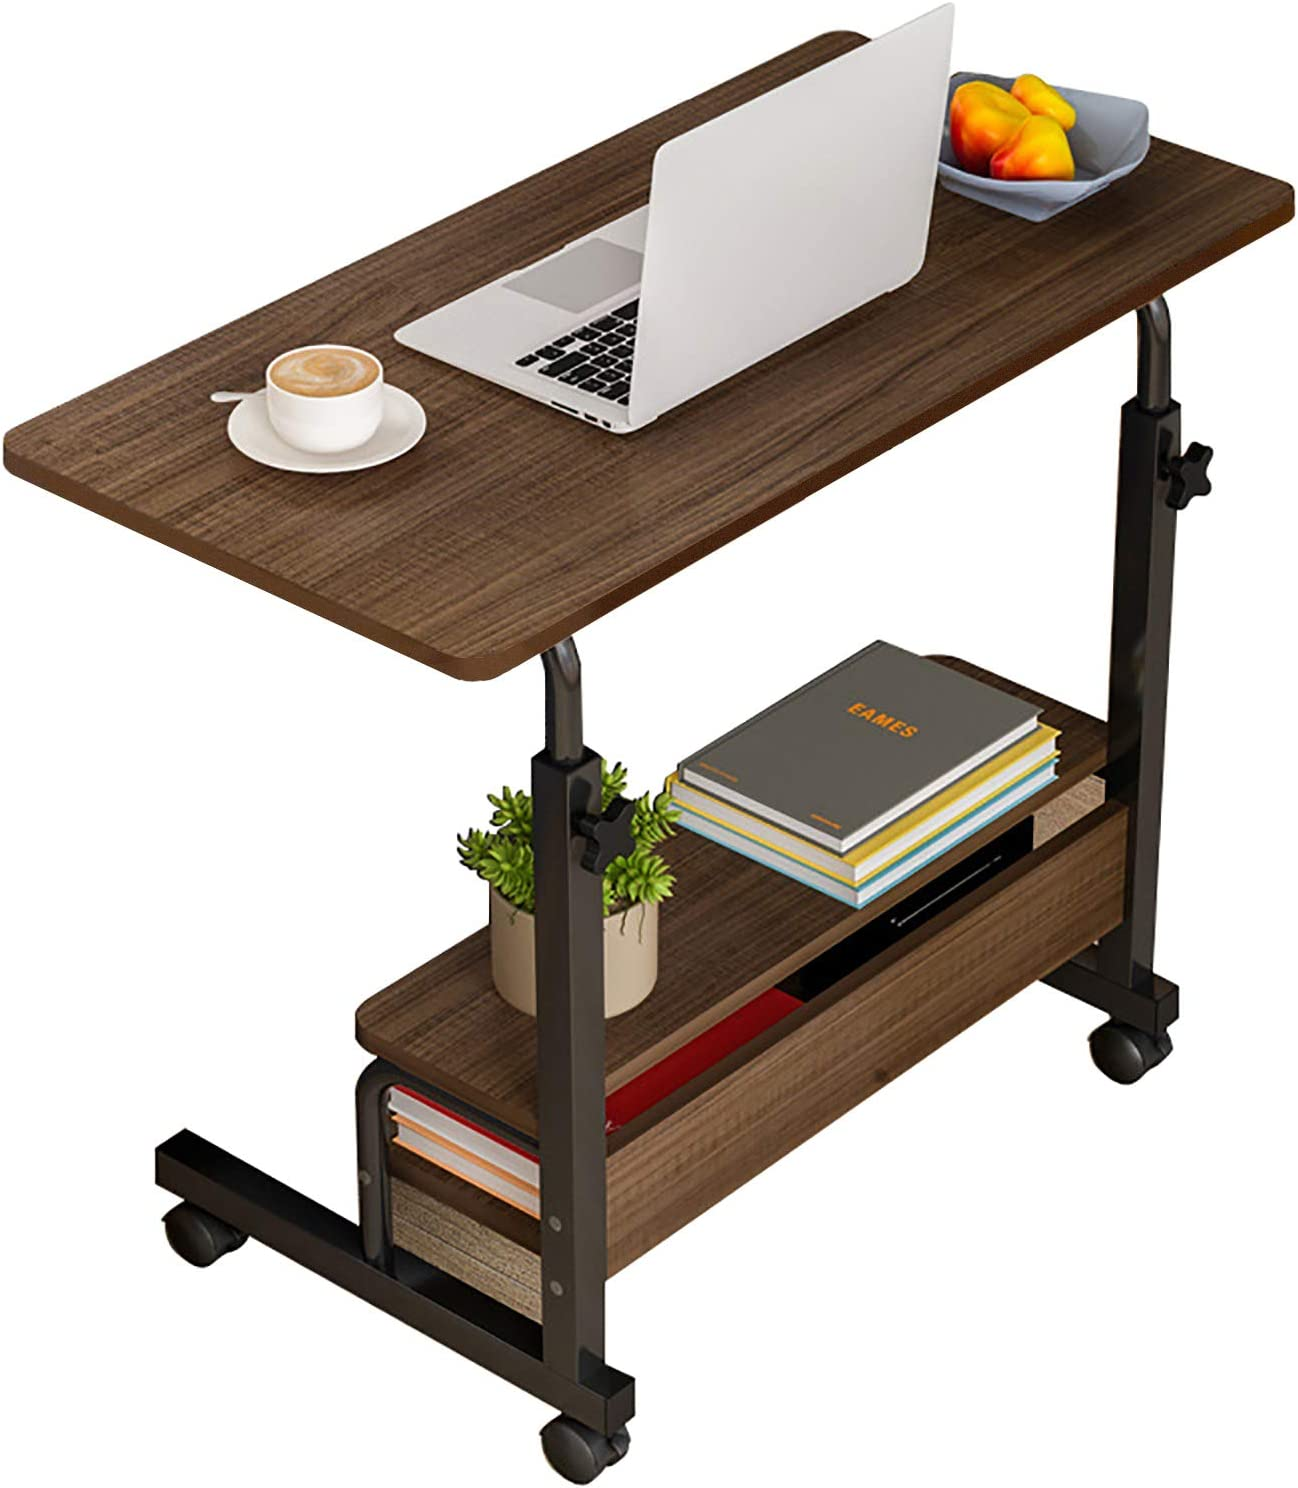 Computer-Desk Office-Desk, Small-Folding Gaming-Laptop Home-Office Desks for Small Spaces, Writing Study Desk Table with Storage for Home Bedroom, Adjustable Height 32×16×23-36 inches (Black)